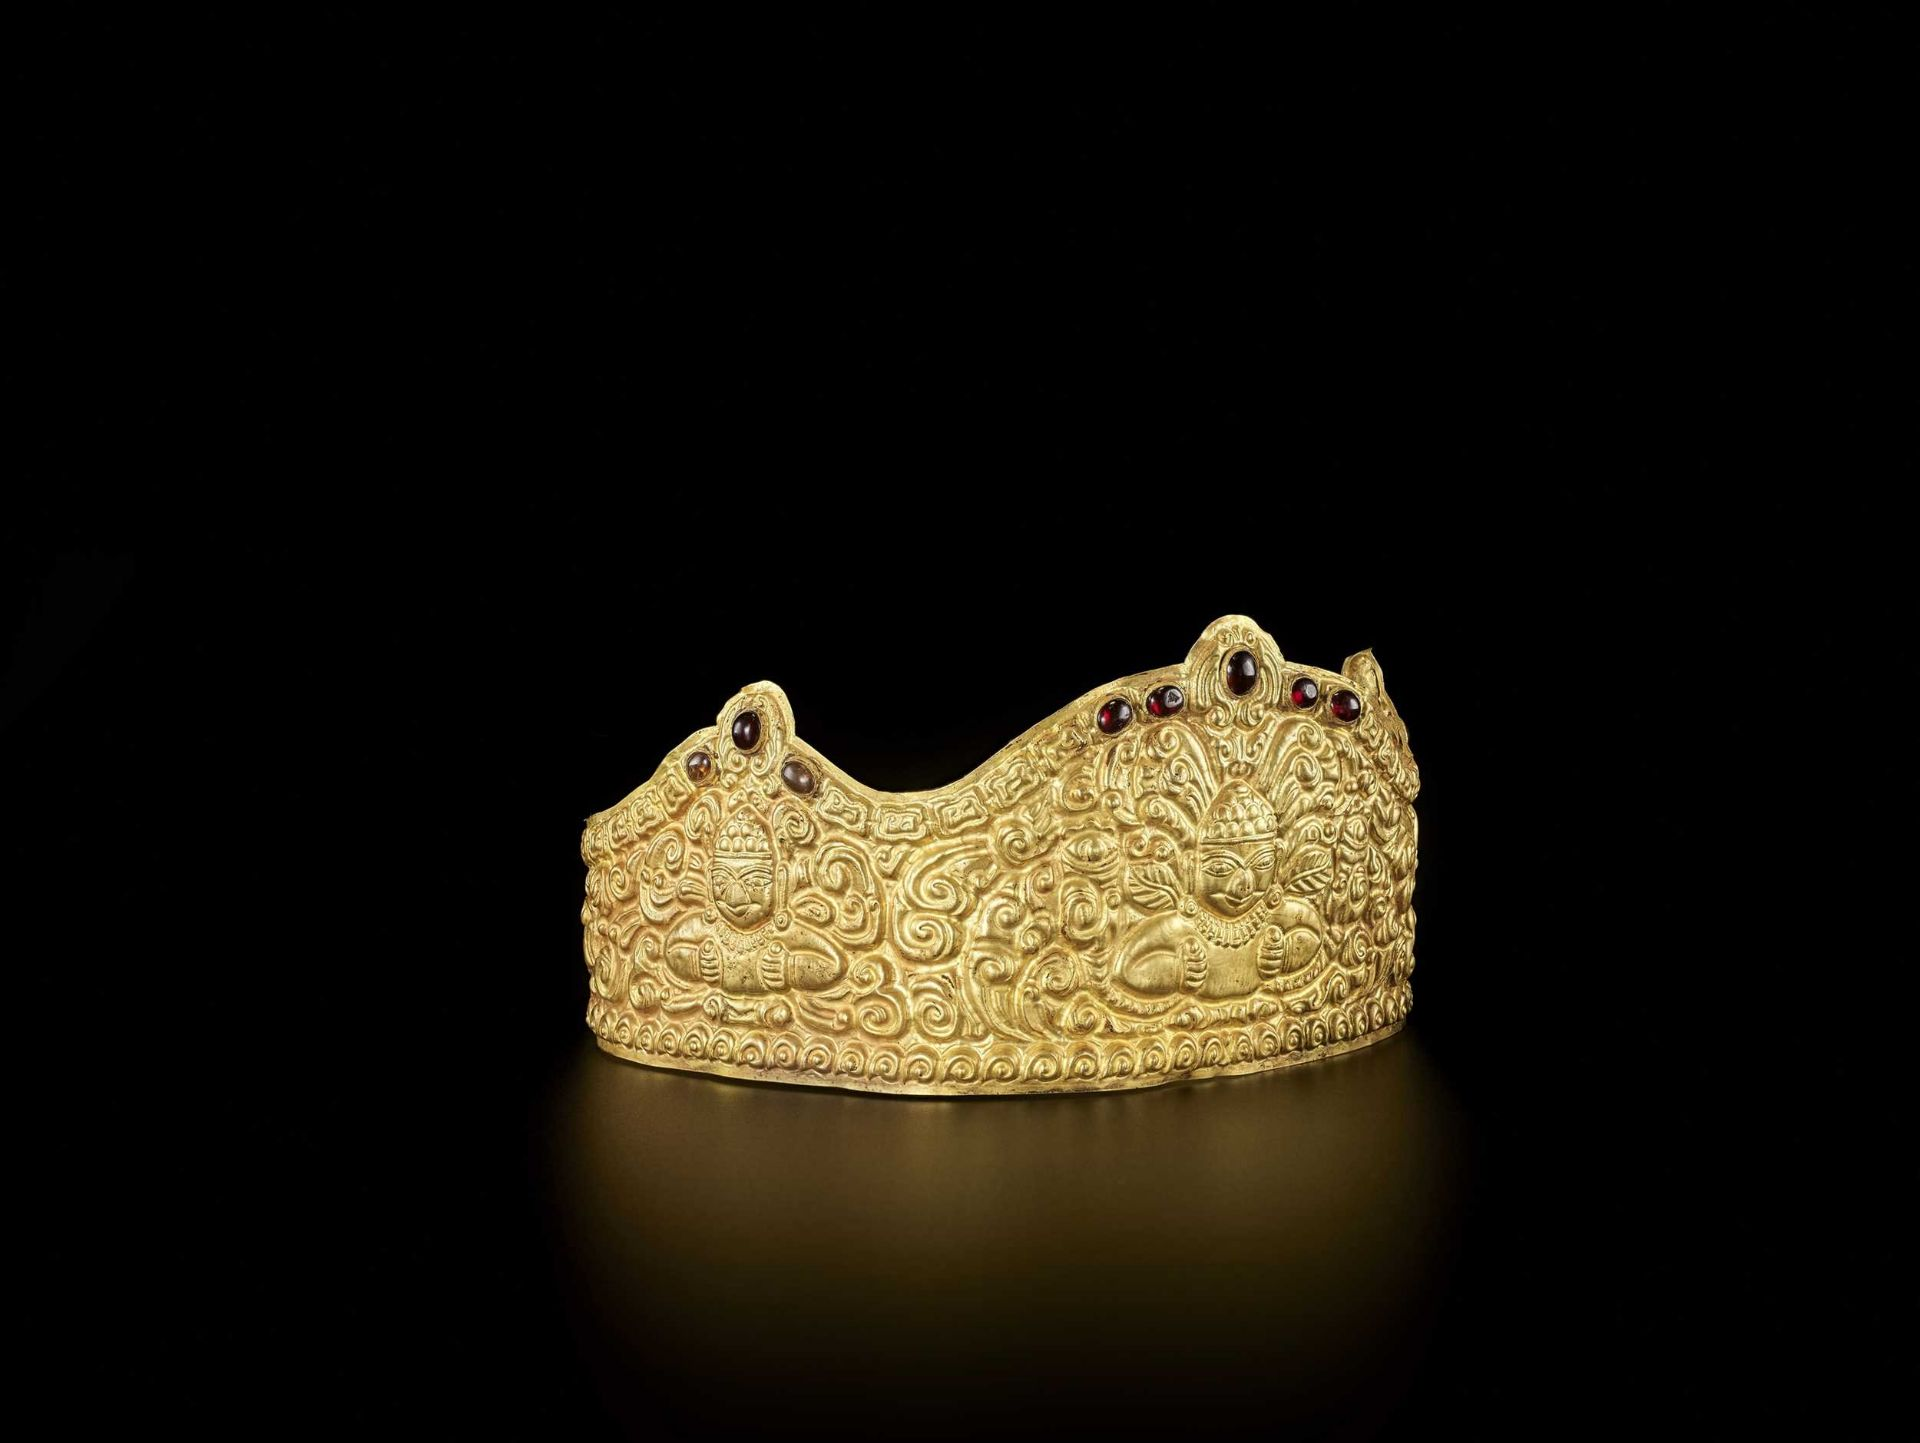 AN EXTRE MELY RARE AND FINE CHAM GEMSTONE-SET GOLD REPOUSSÉ CROWN WITH GARUDAS - Bild 4 aus 9